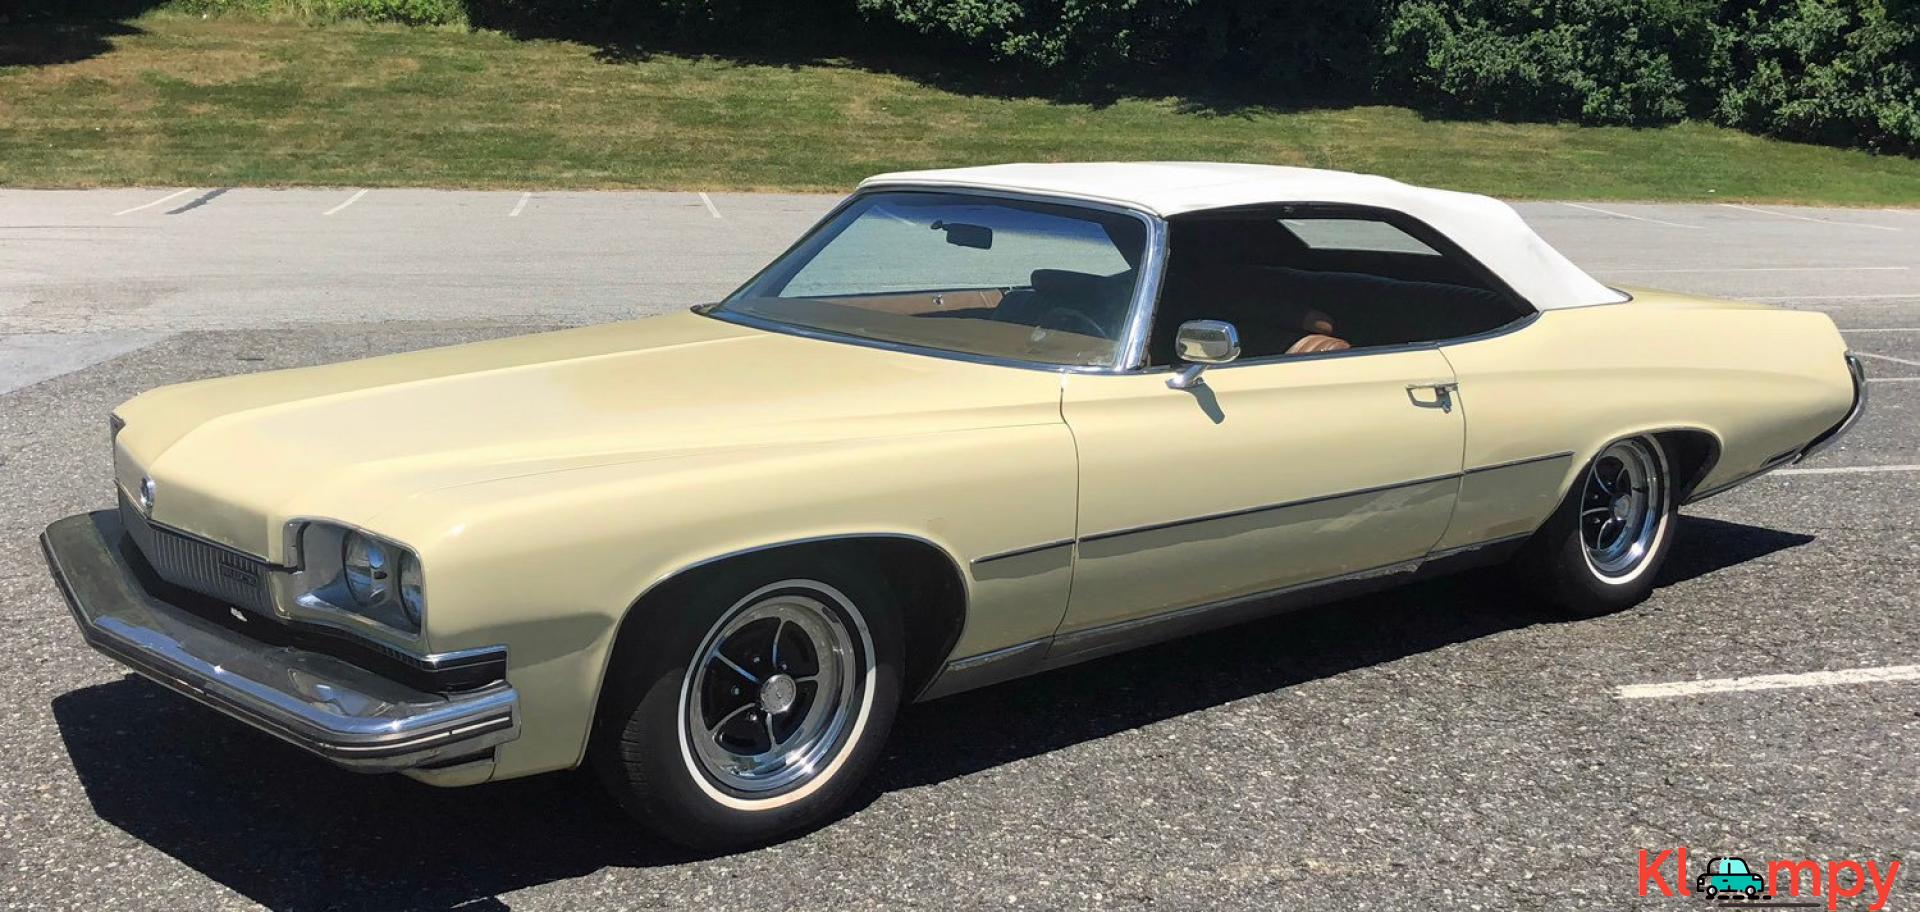 1973 Buick Centurion 350 Convertible V8 - 1/20